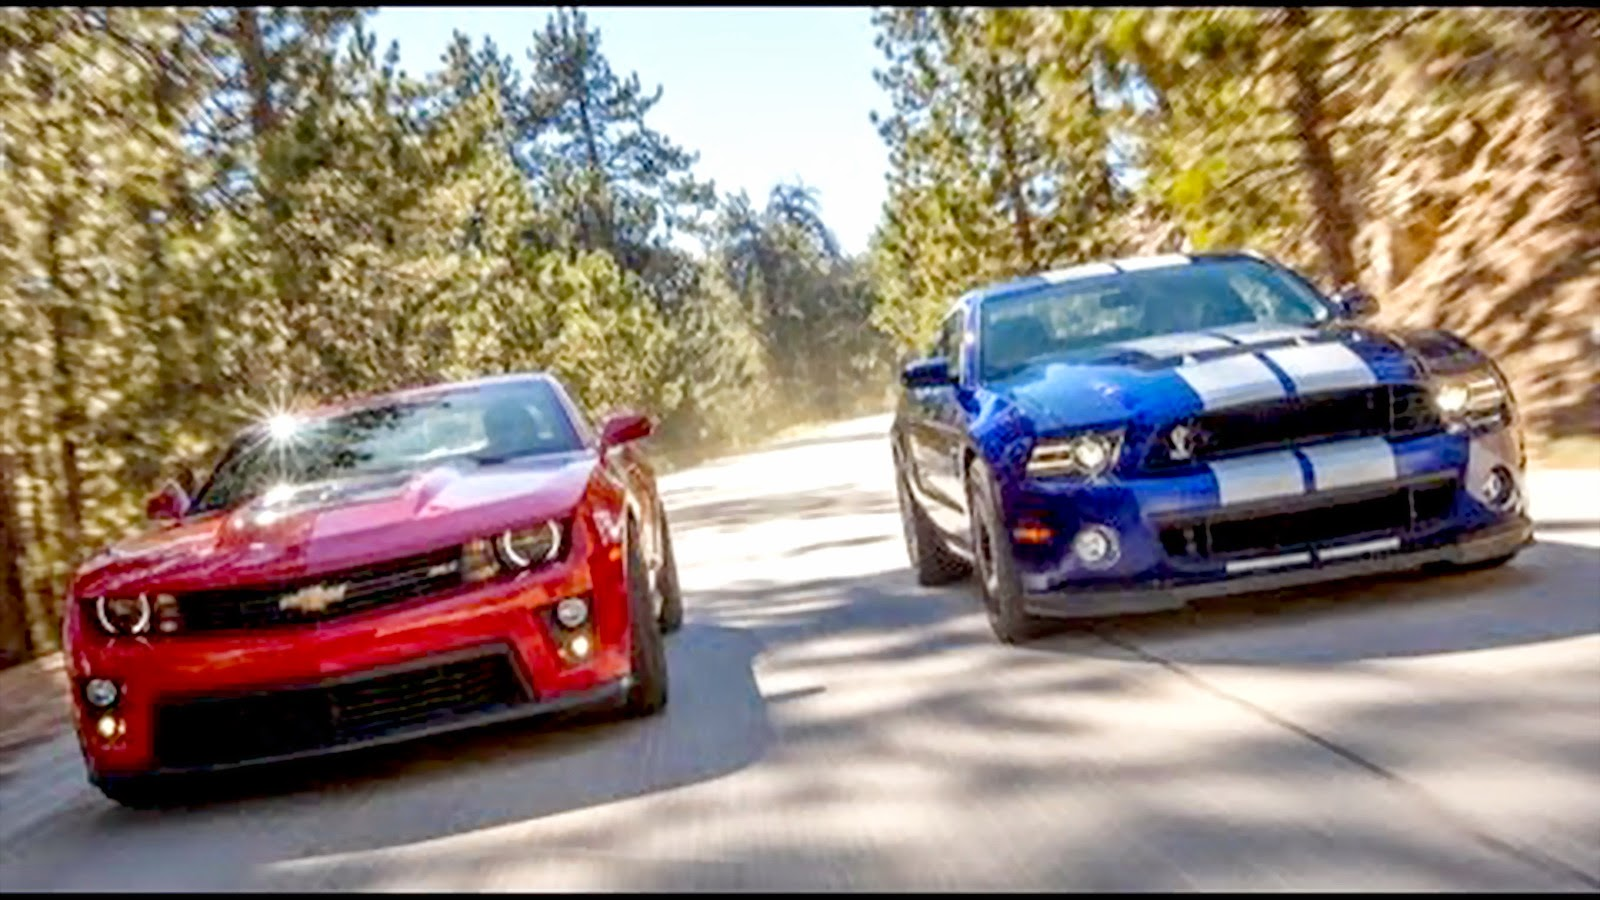 2014 Ford Mustang Shelby Gt500 Vs Camaro Zl1